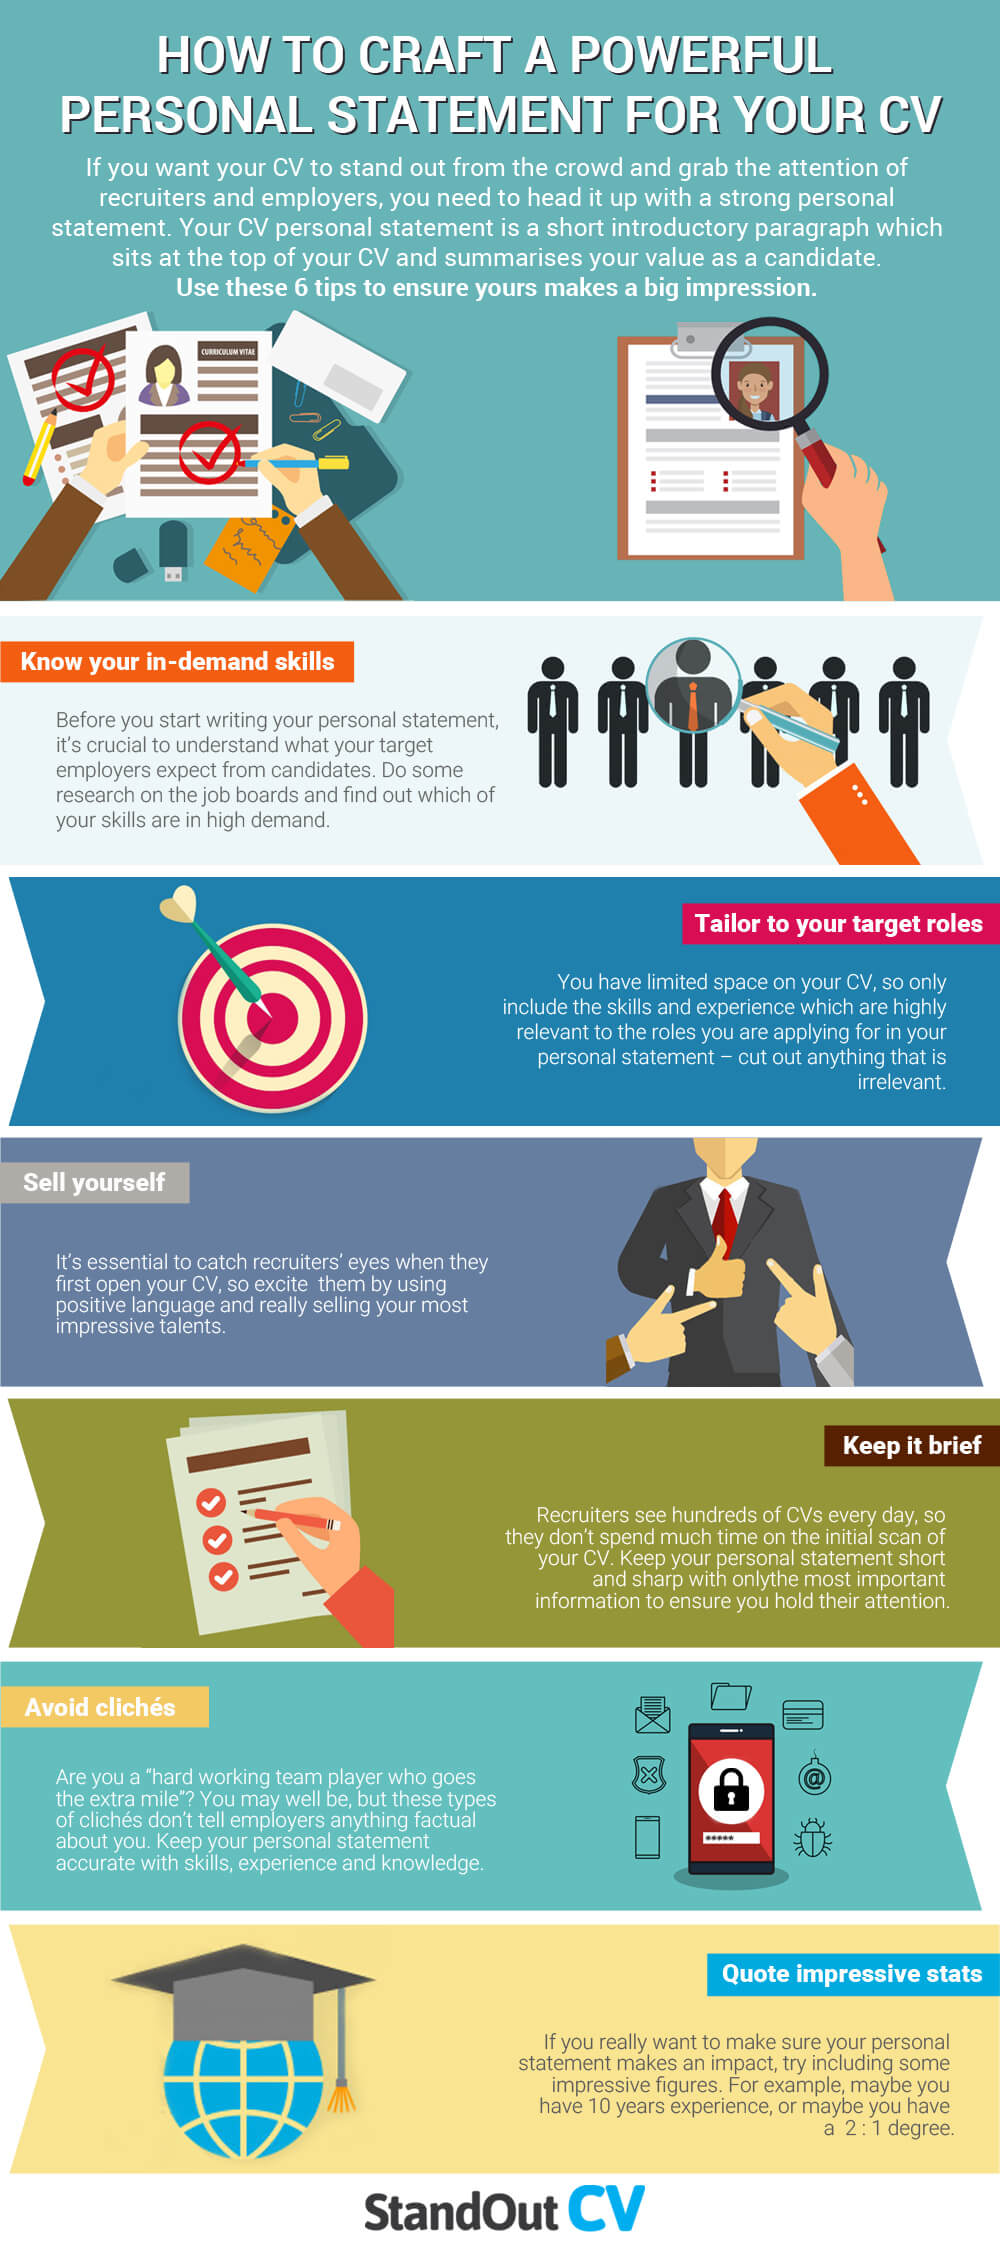 personal statement CV infographic